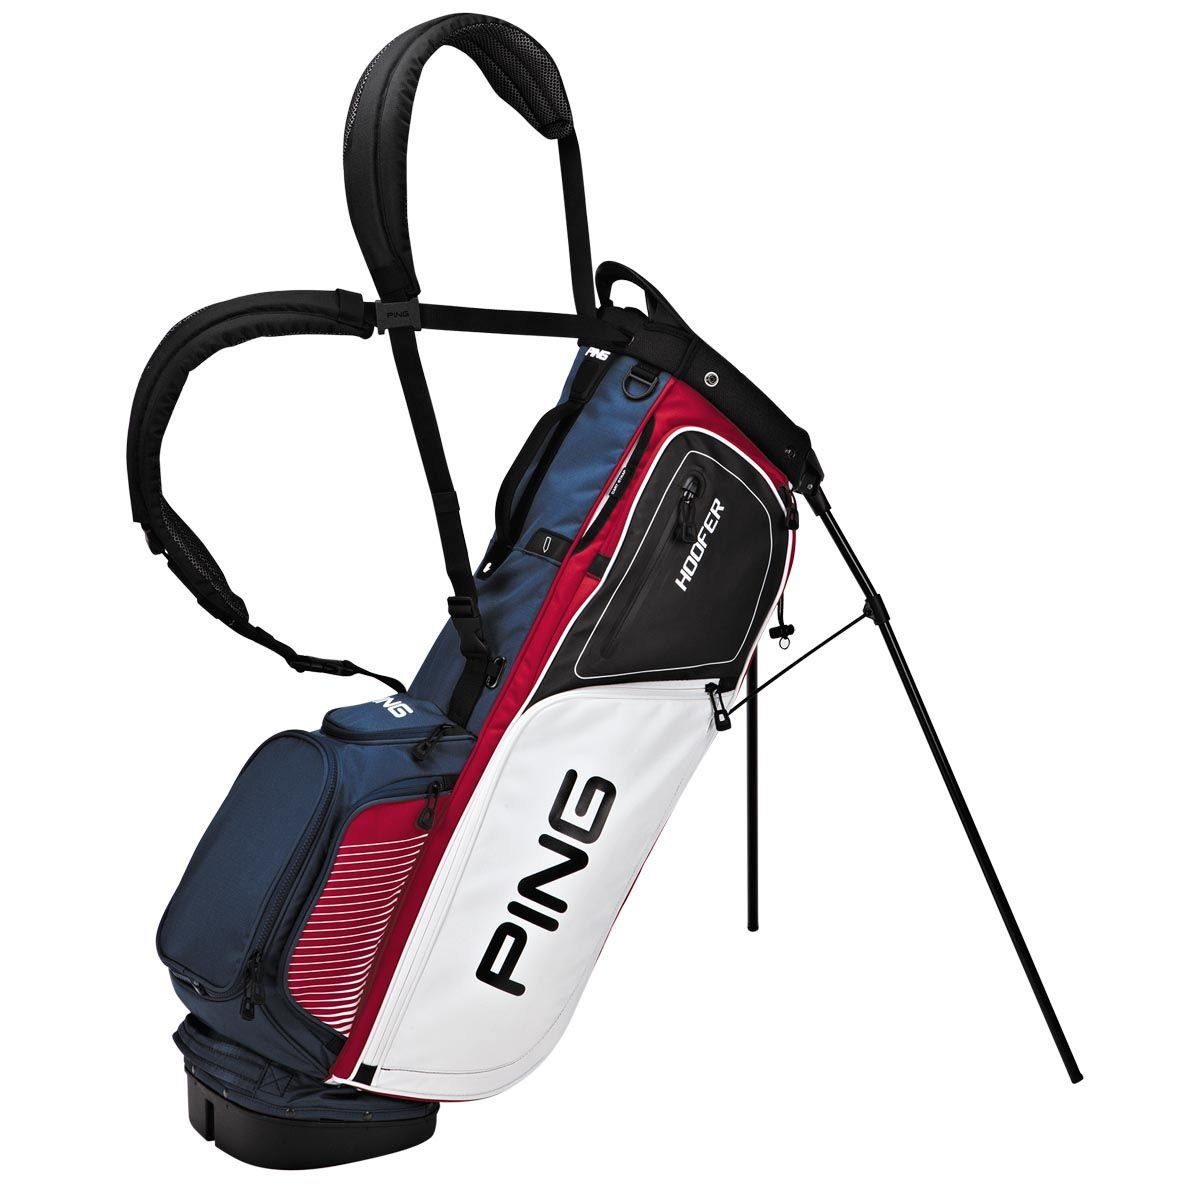 Ping Hoofer Junior light weight golf bag best bag 2017 thejuniorgolfer